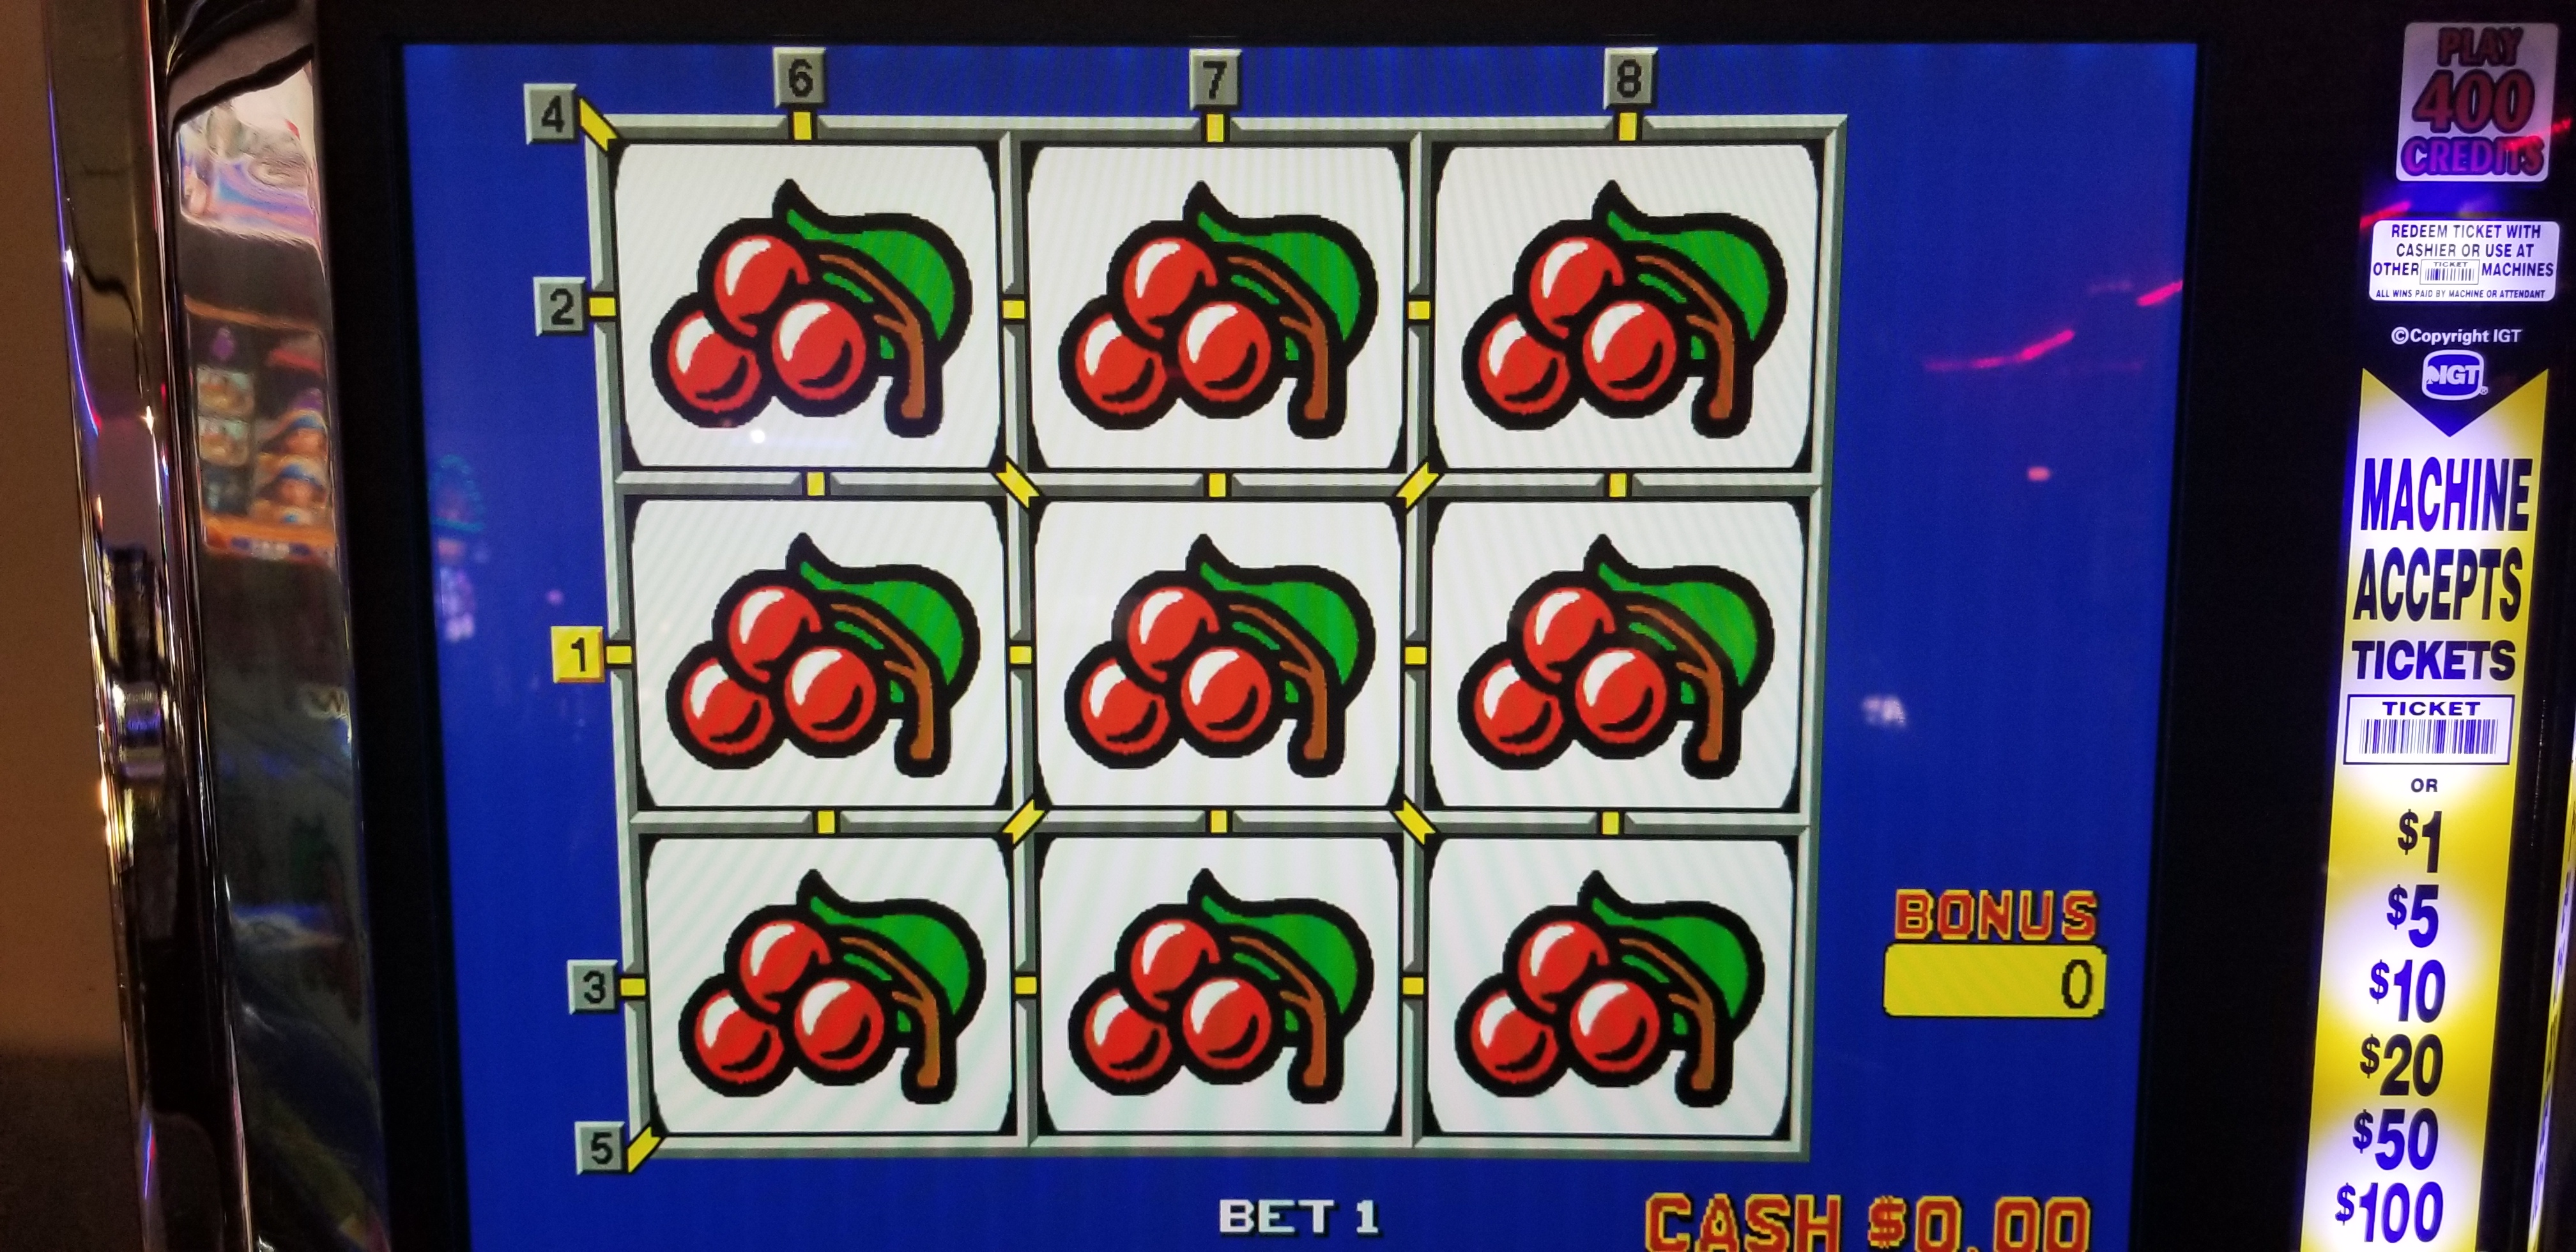 Igt Game King Multi Game 17 Quot Lcd Slot Machines For Sale